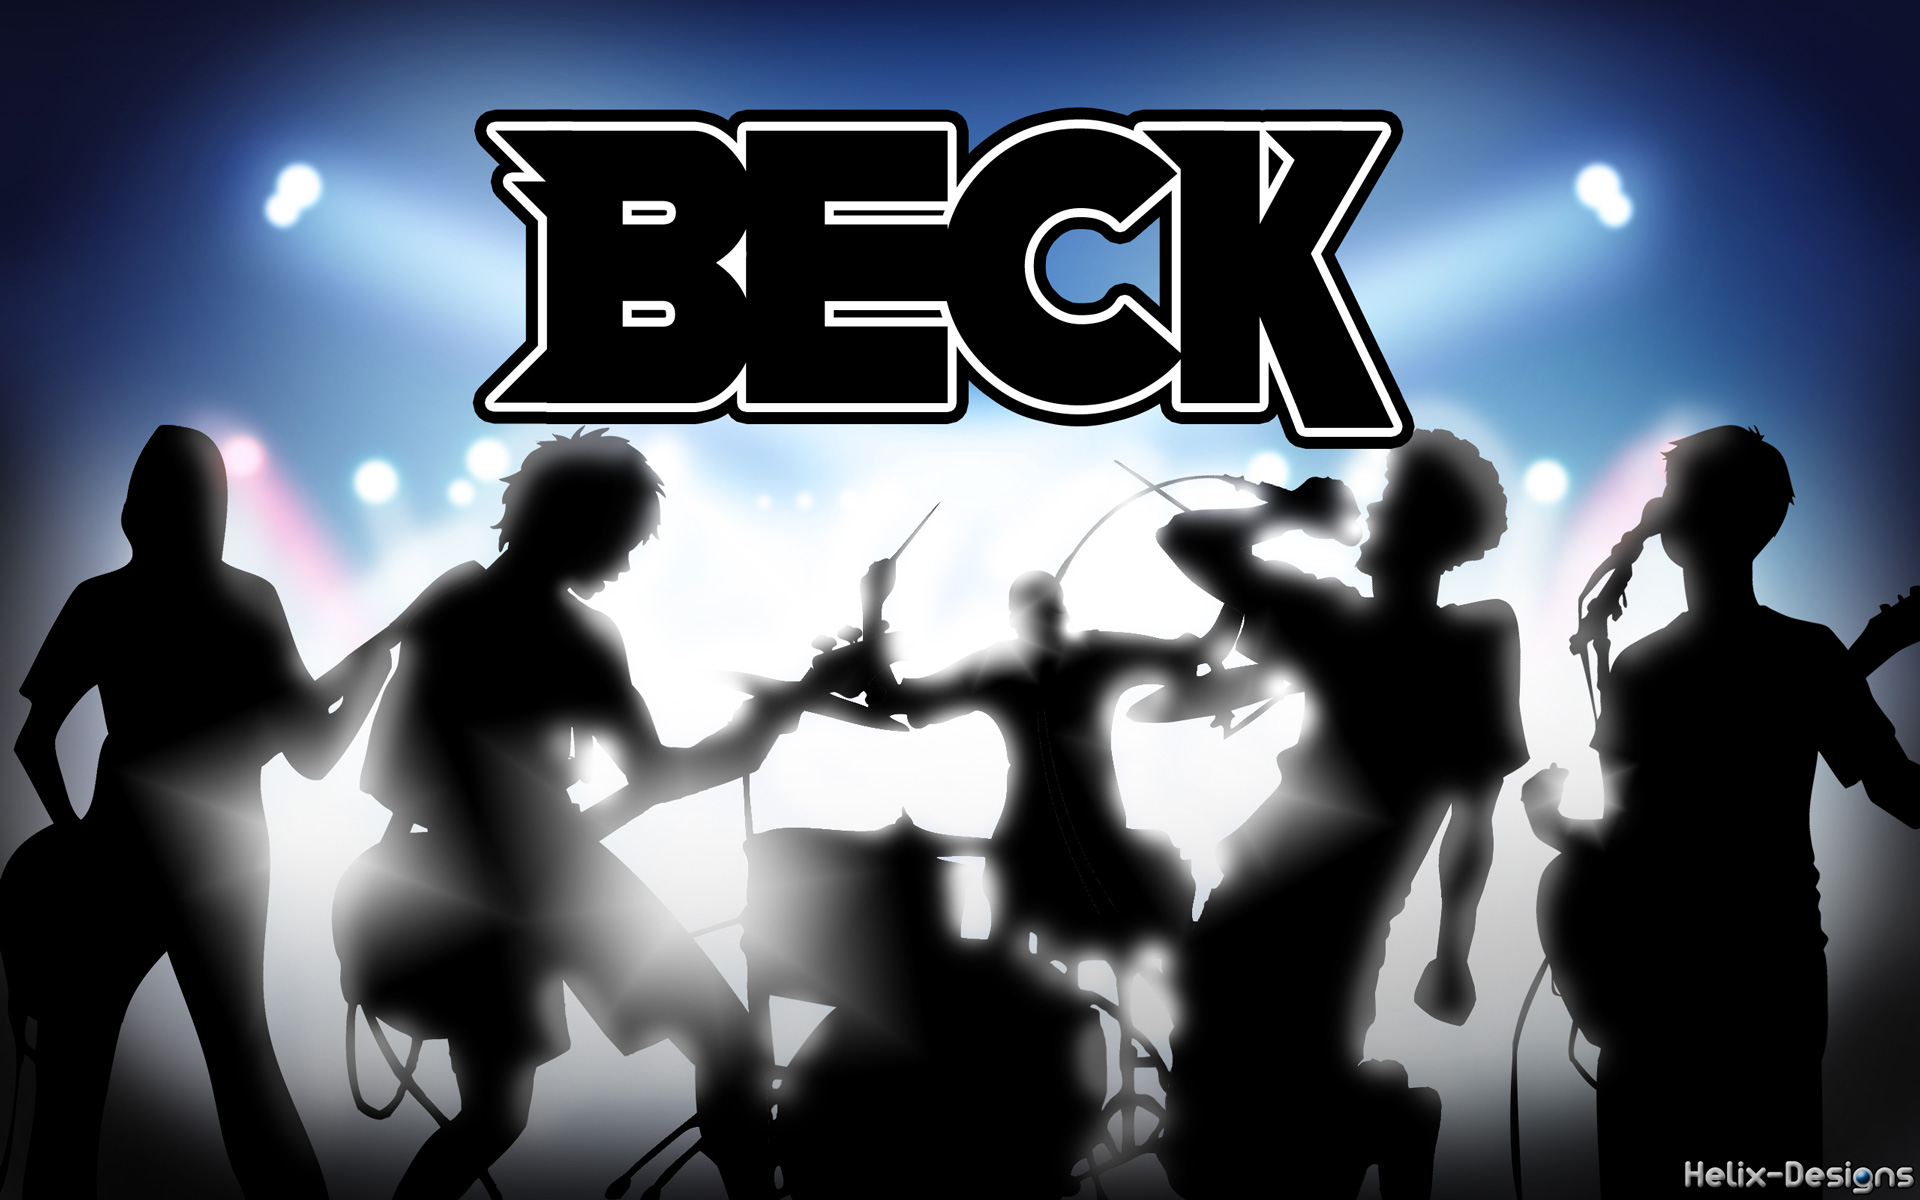 Beck HD Wallpaper Background Image 1920x1200 ID73801 1920x1200